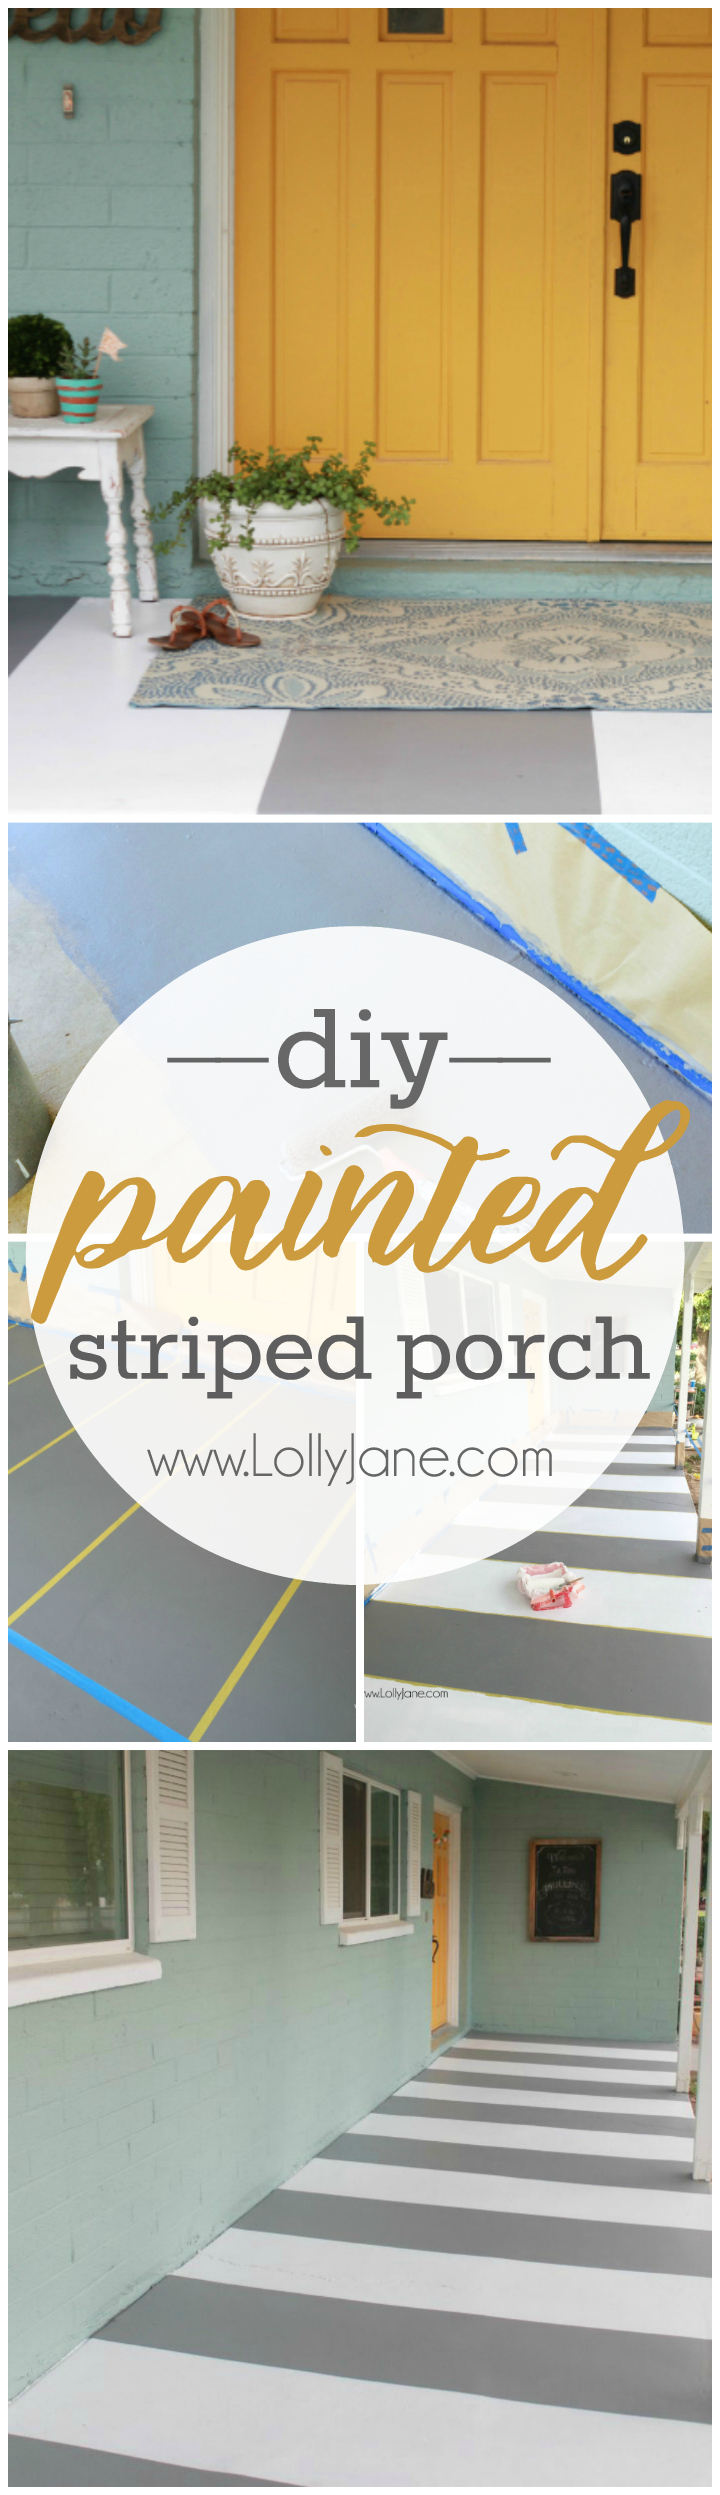 How to paint stripes on a concrete porch. Love this easy tutorial with great tips to stripe your concrete porch!